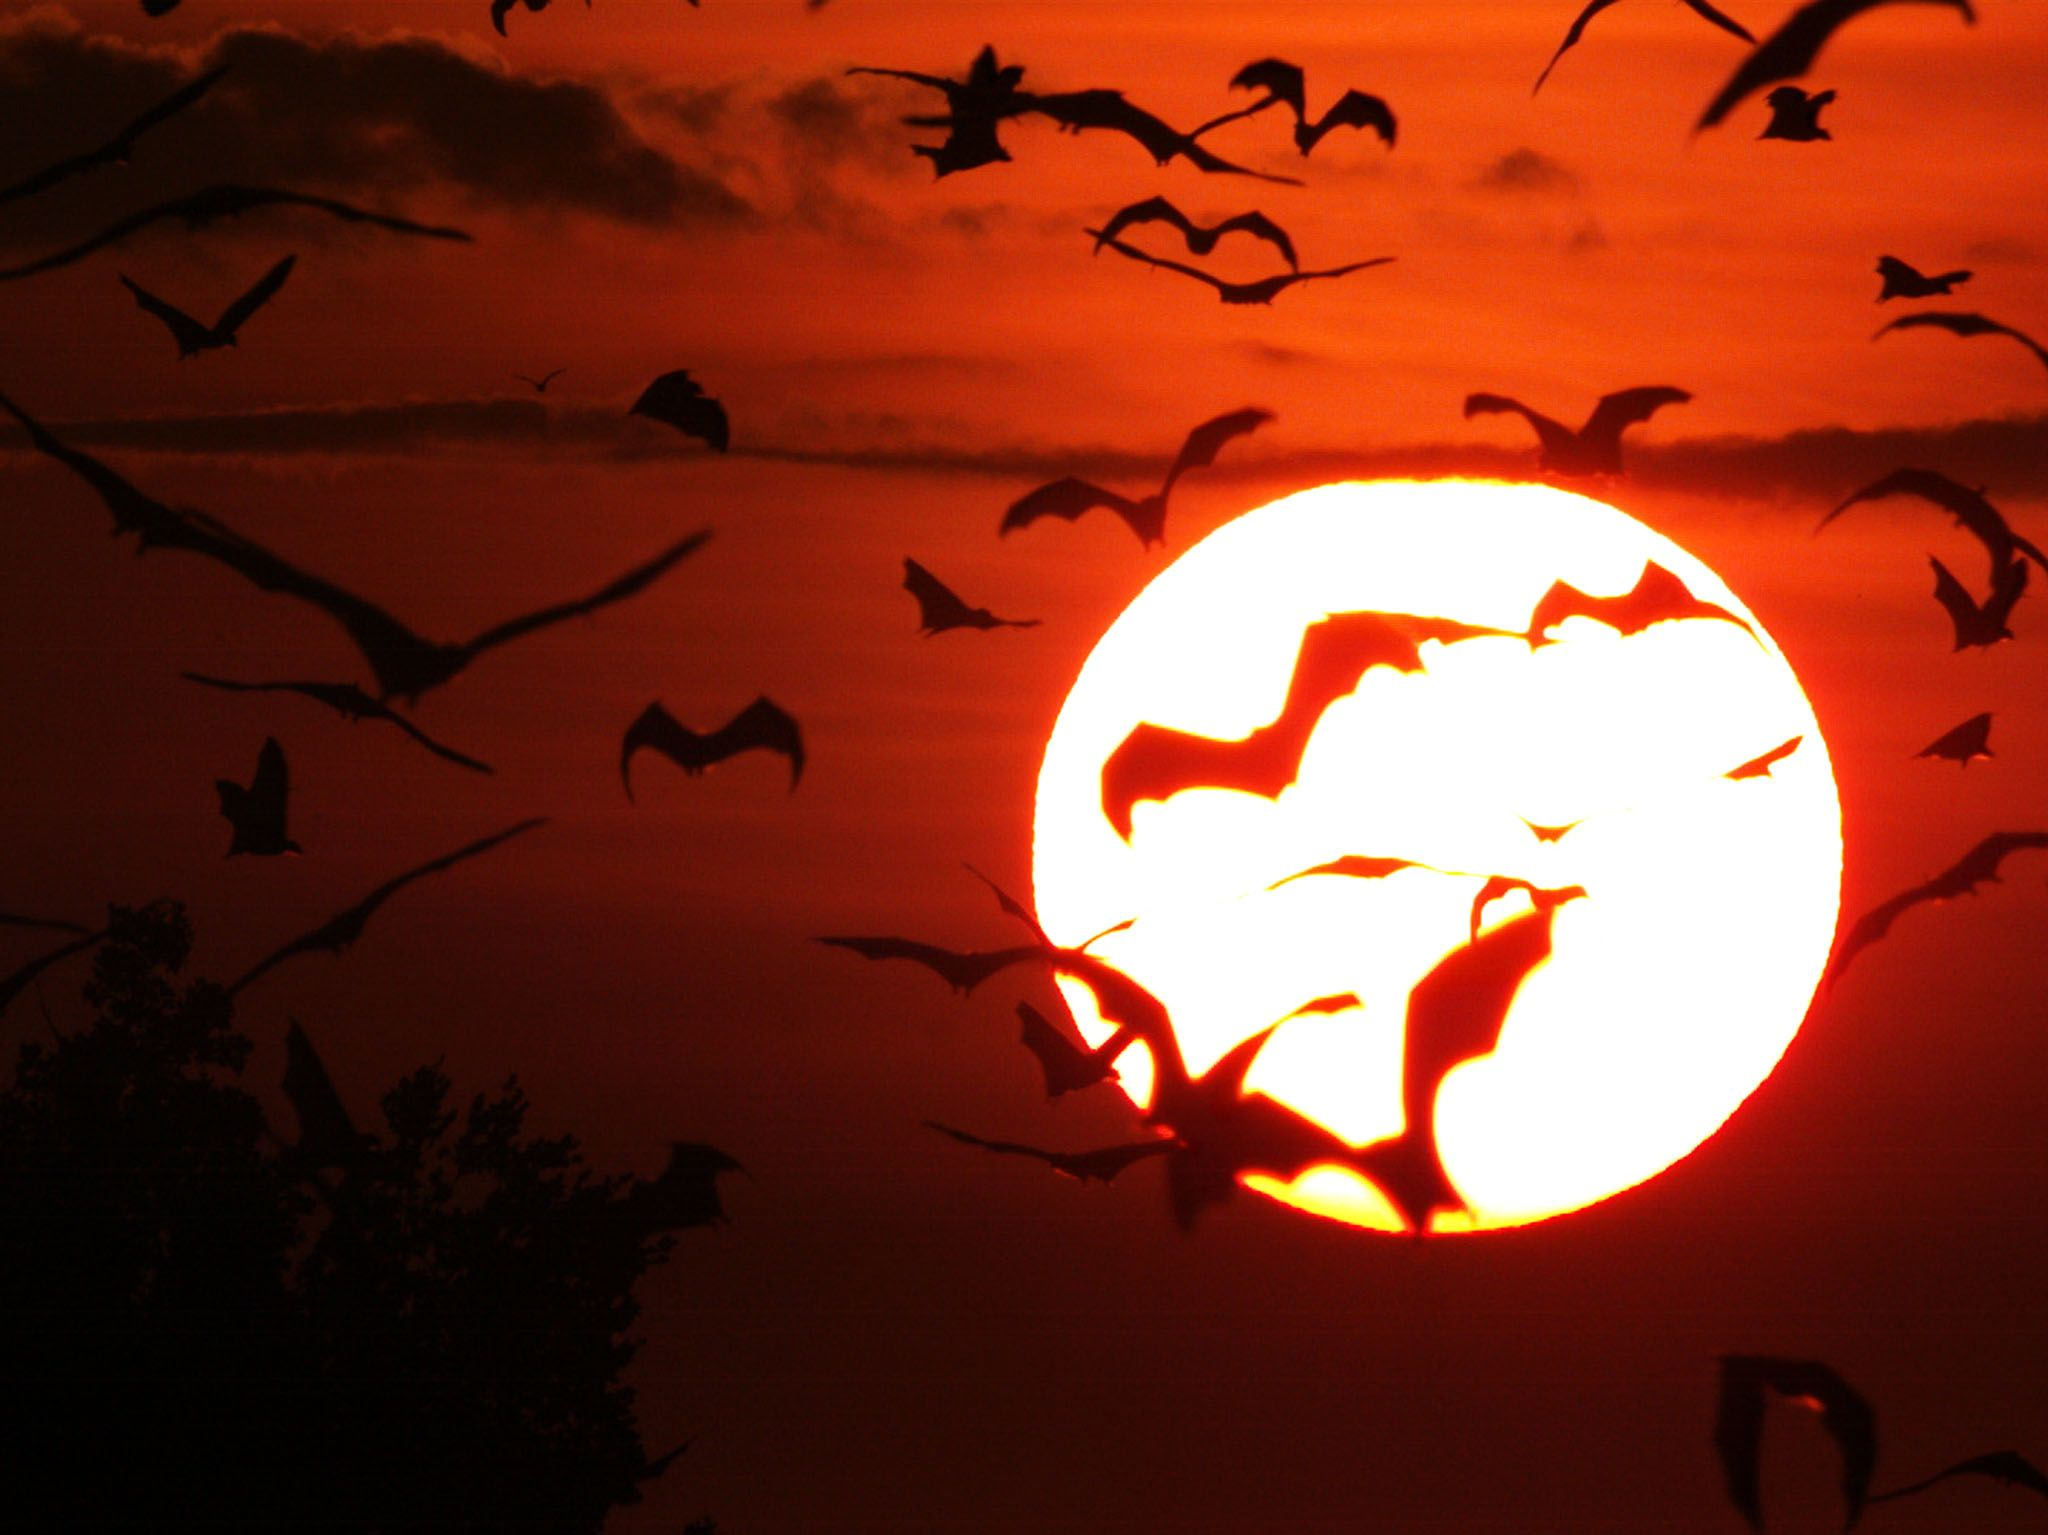 Zambia: Straw coloured fruit bats flying against a settling sun. This image is from Incredible Bats. [Foto del giorno - settembre 2017]